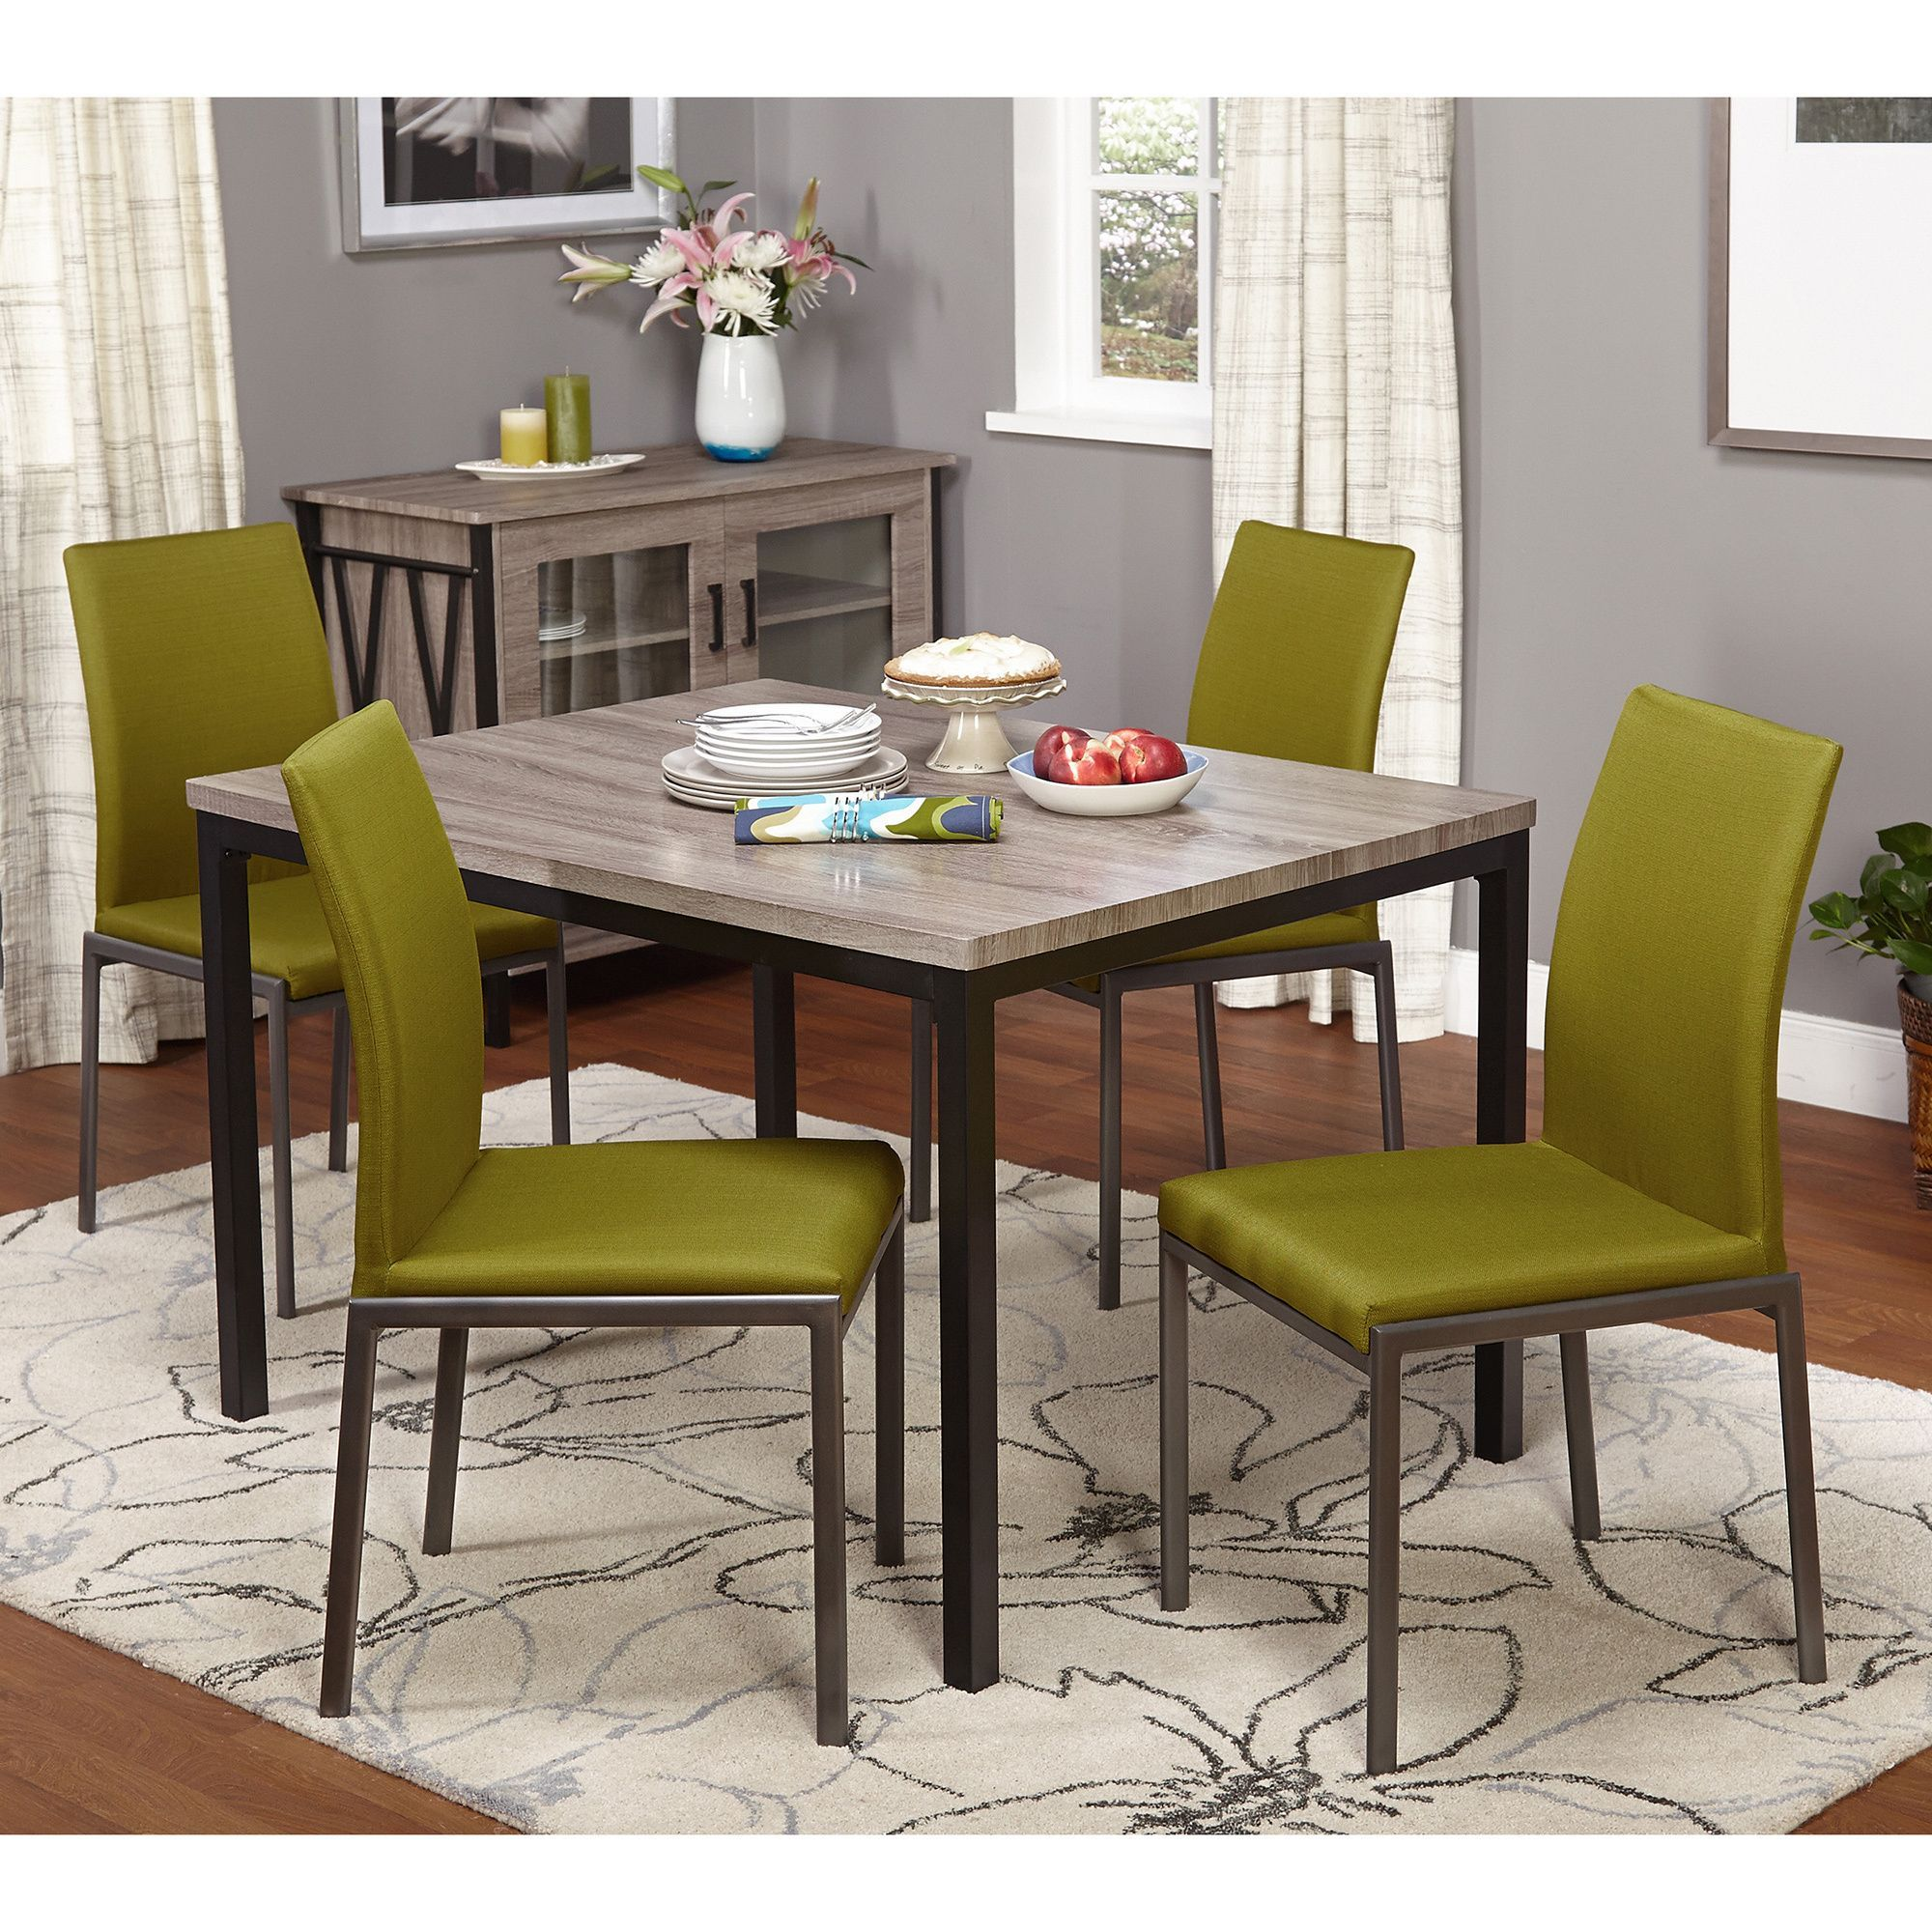 Wonderful Simple Living Harrison 5 Piece Dining Set